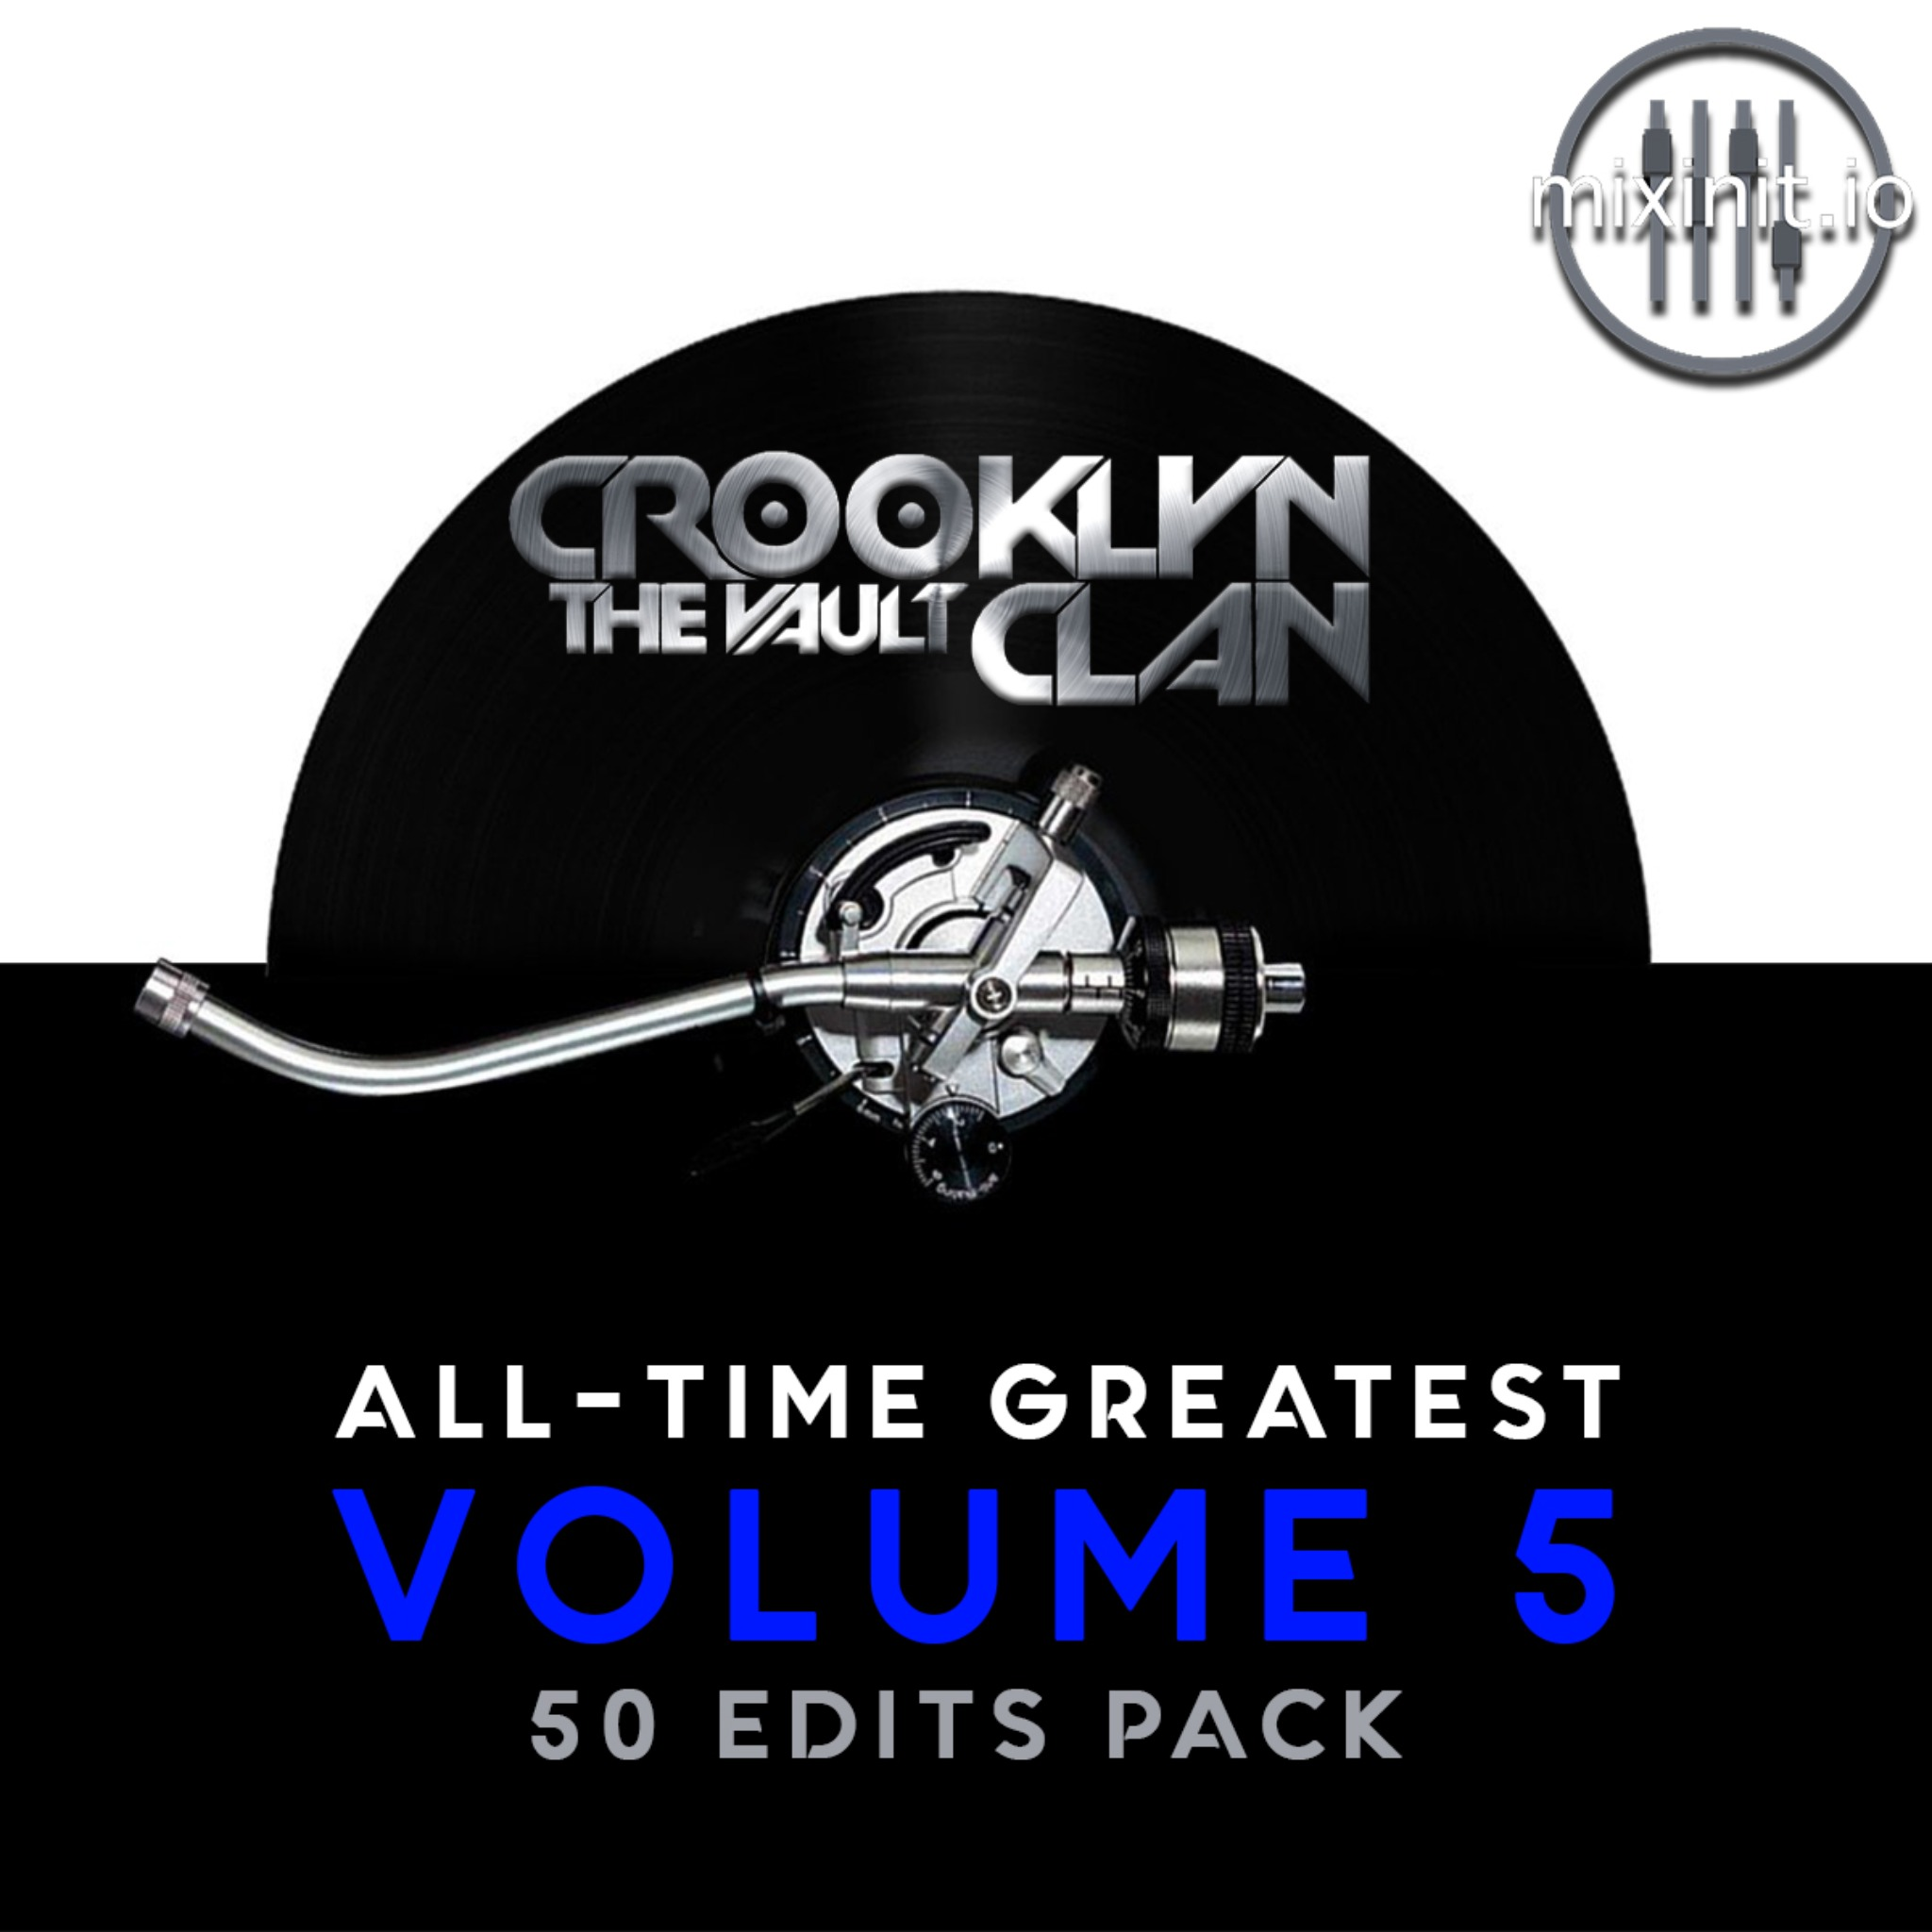 Best Of The Crooklyn Clan Vault Vol. 5 (Various Editors)